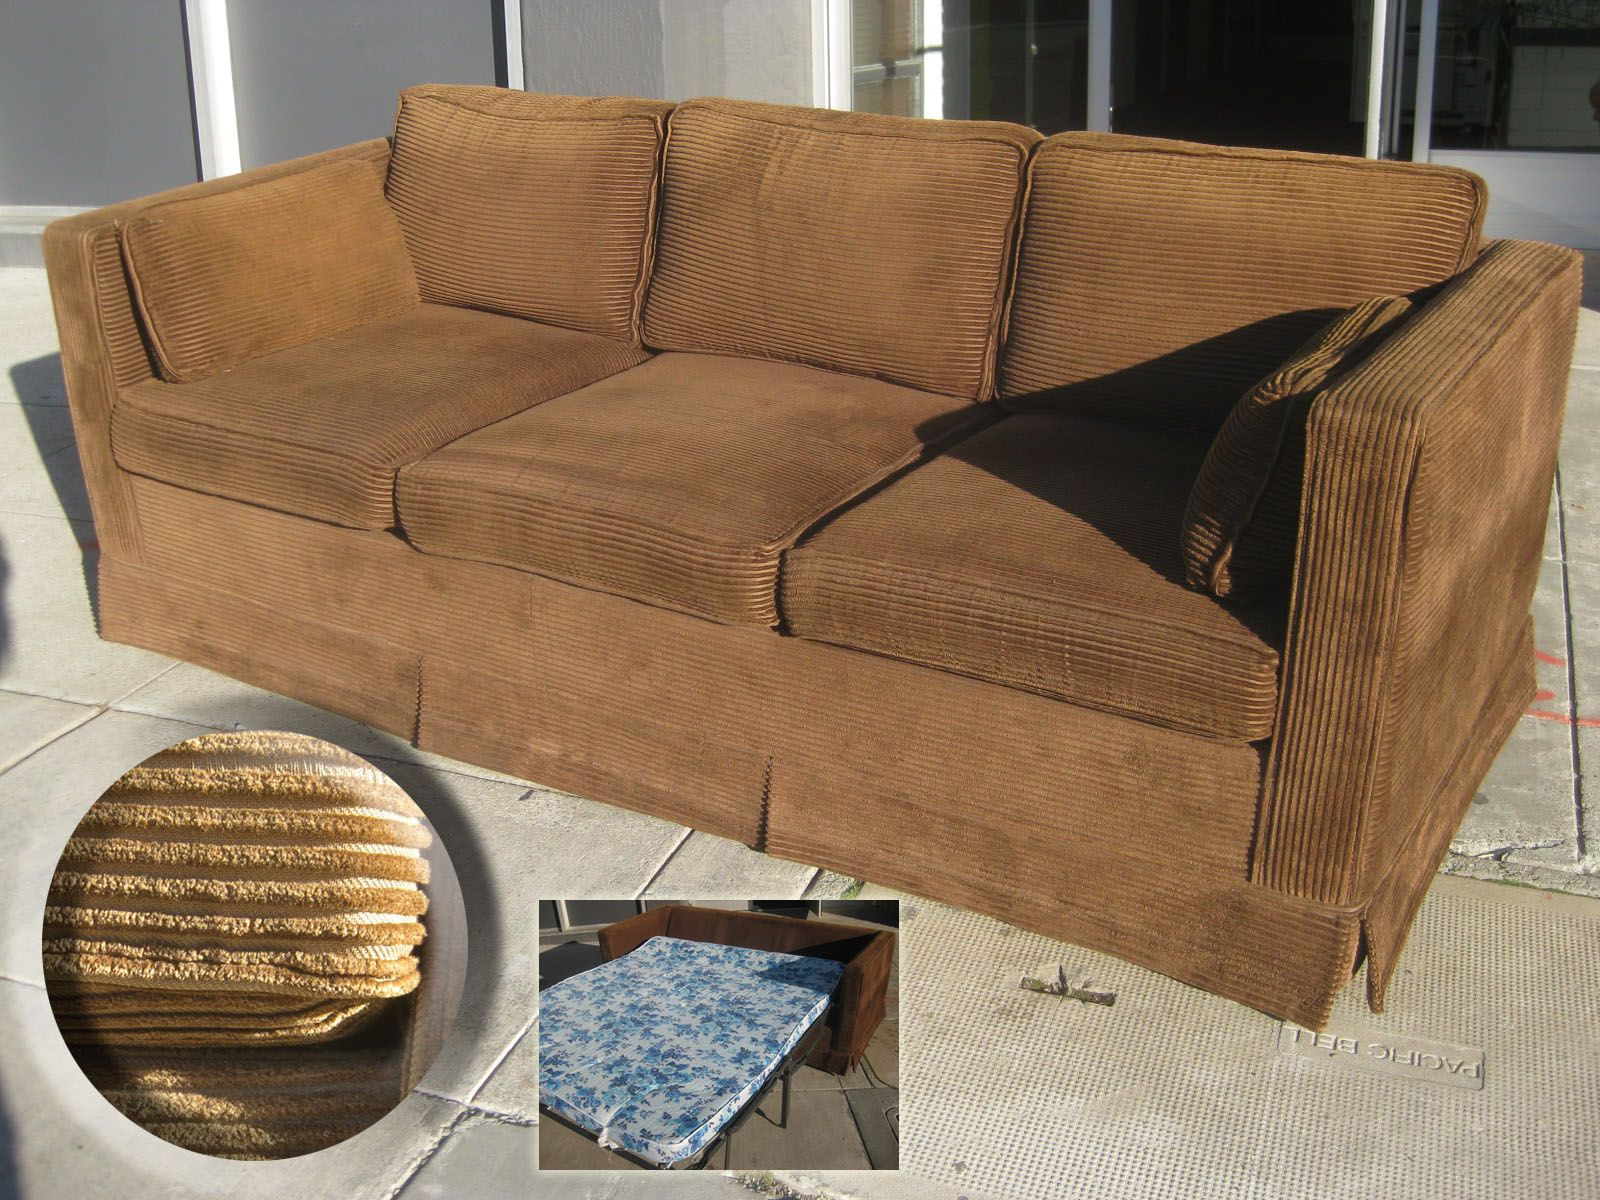 Incredible Awesome 70S Brown Corduroy Sofa Bed We Had One Just Like Creativecarmelina Interior Chair Design Creativecarmelinacom